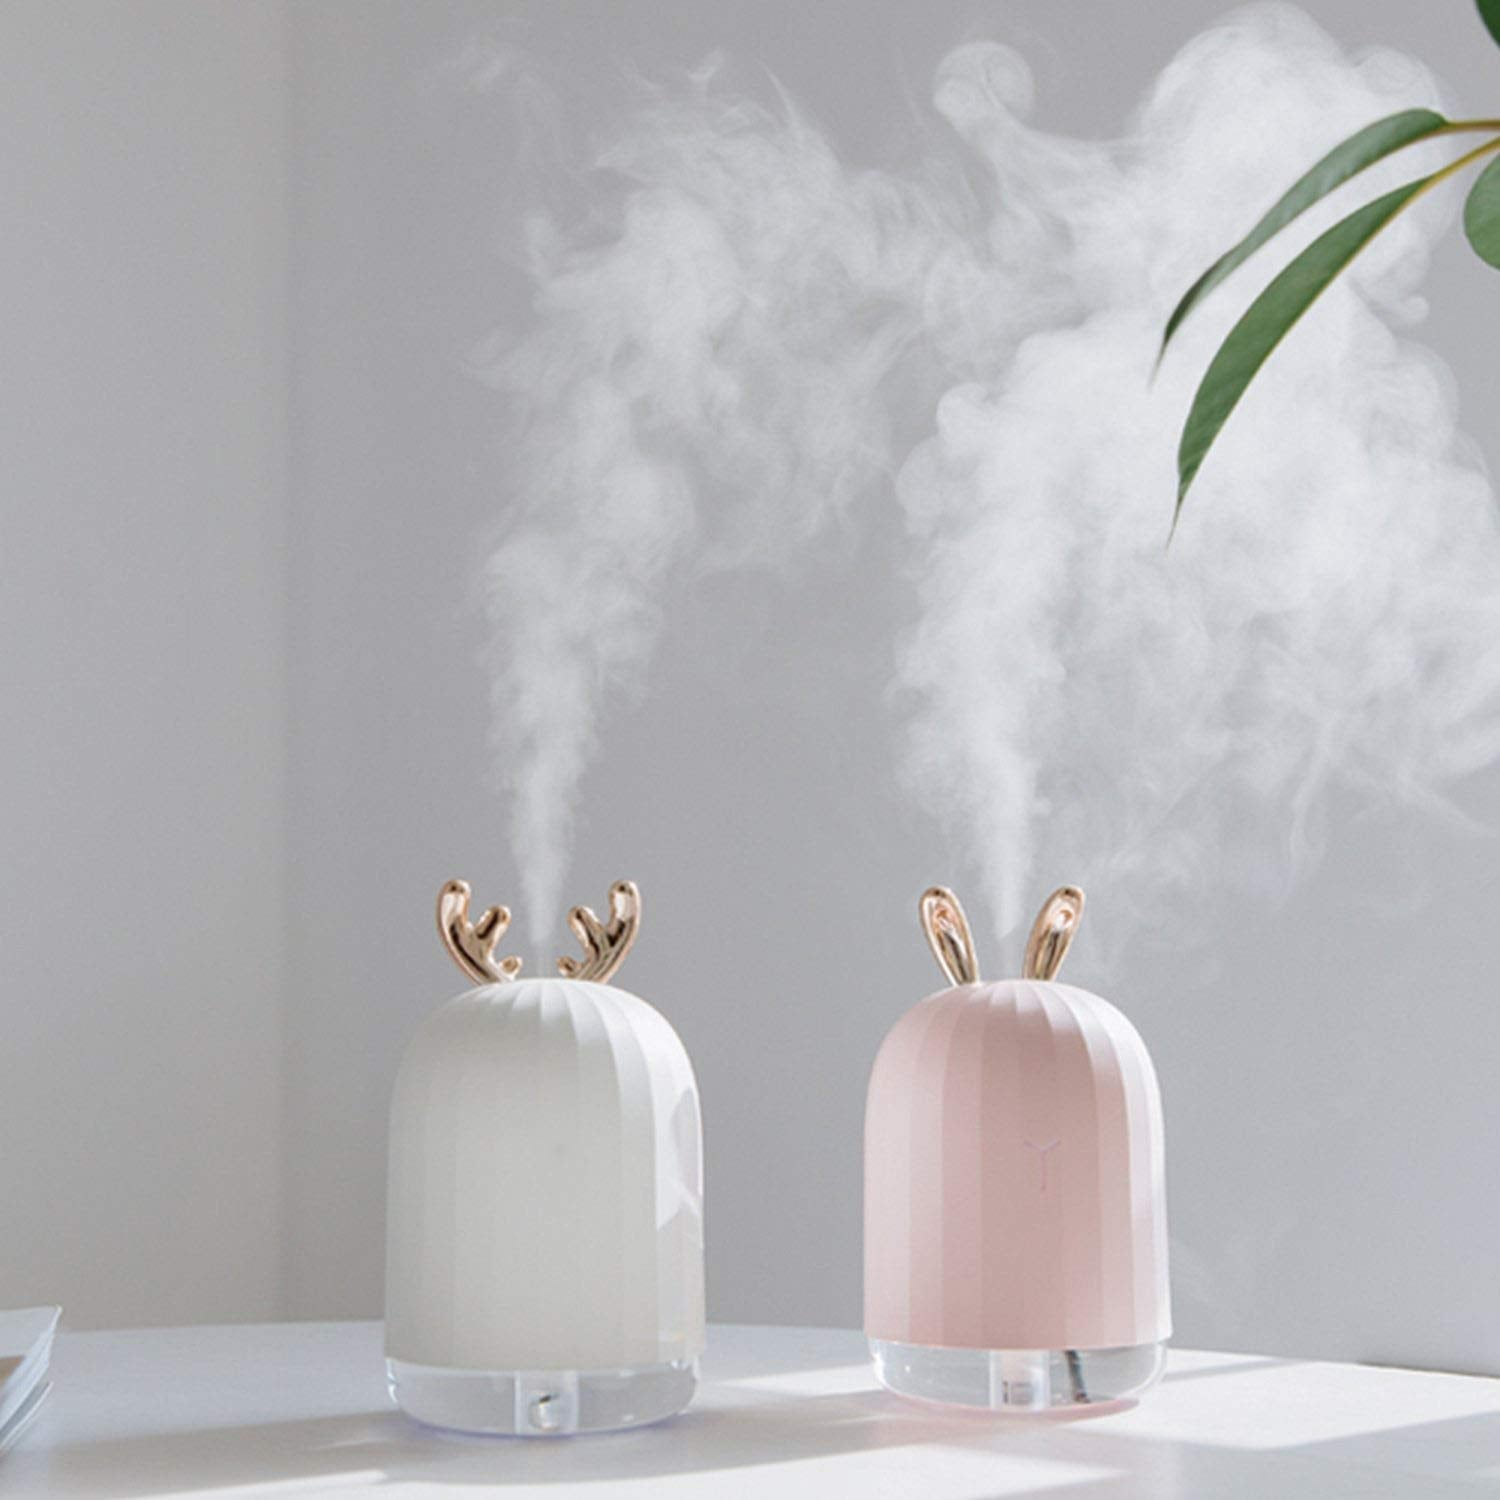 Ultrasonic LED Air Humidifier